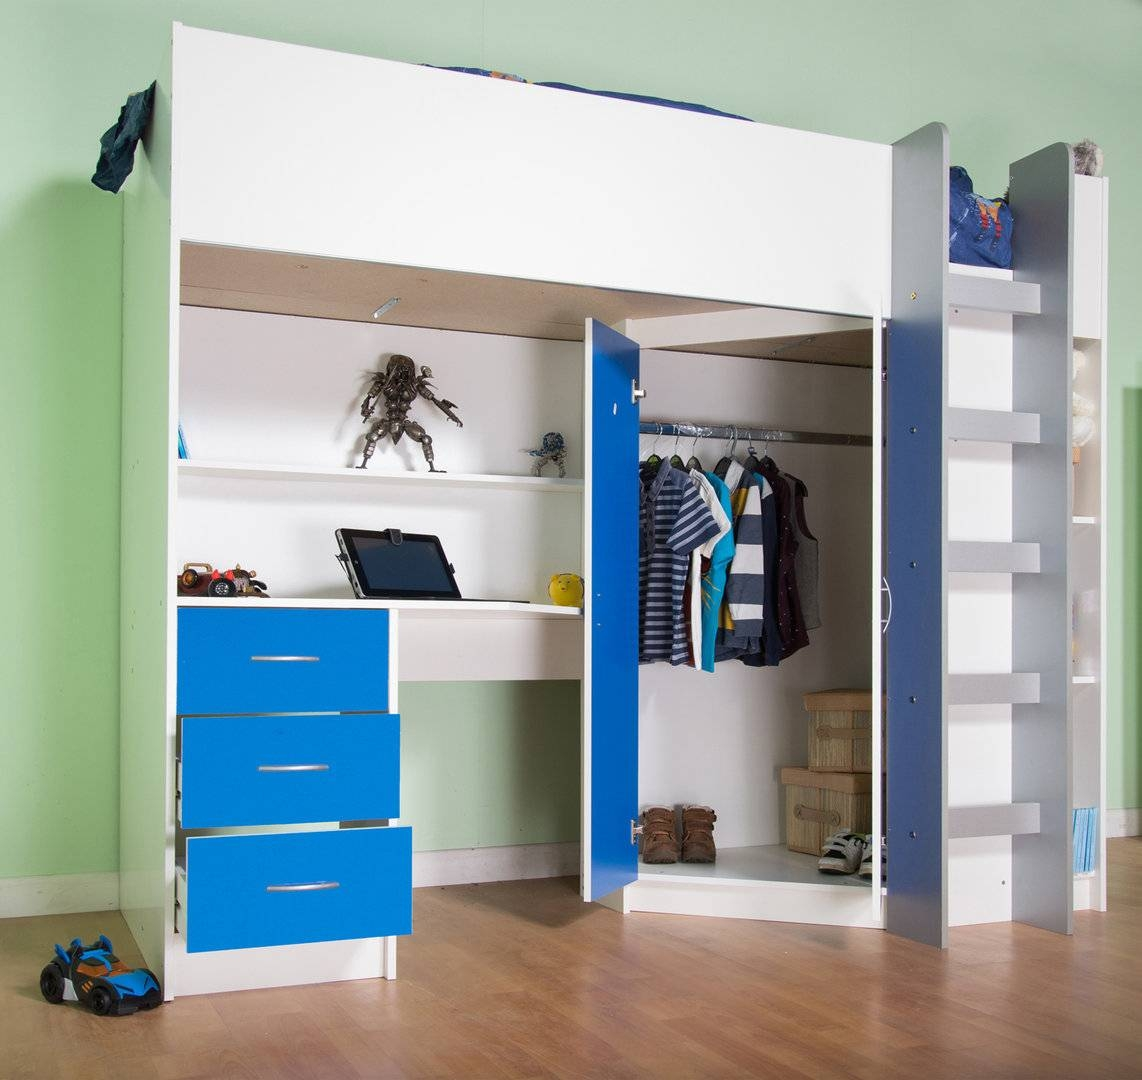 Candy Childrens High Sleeper Bed White/blue with High Sleeper Wardrobes (Image 3 of 15)